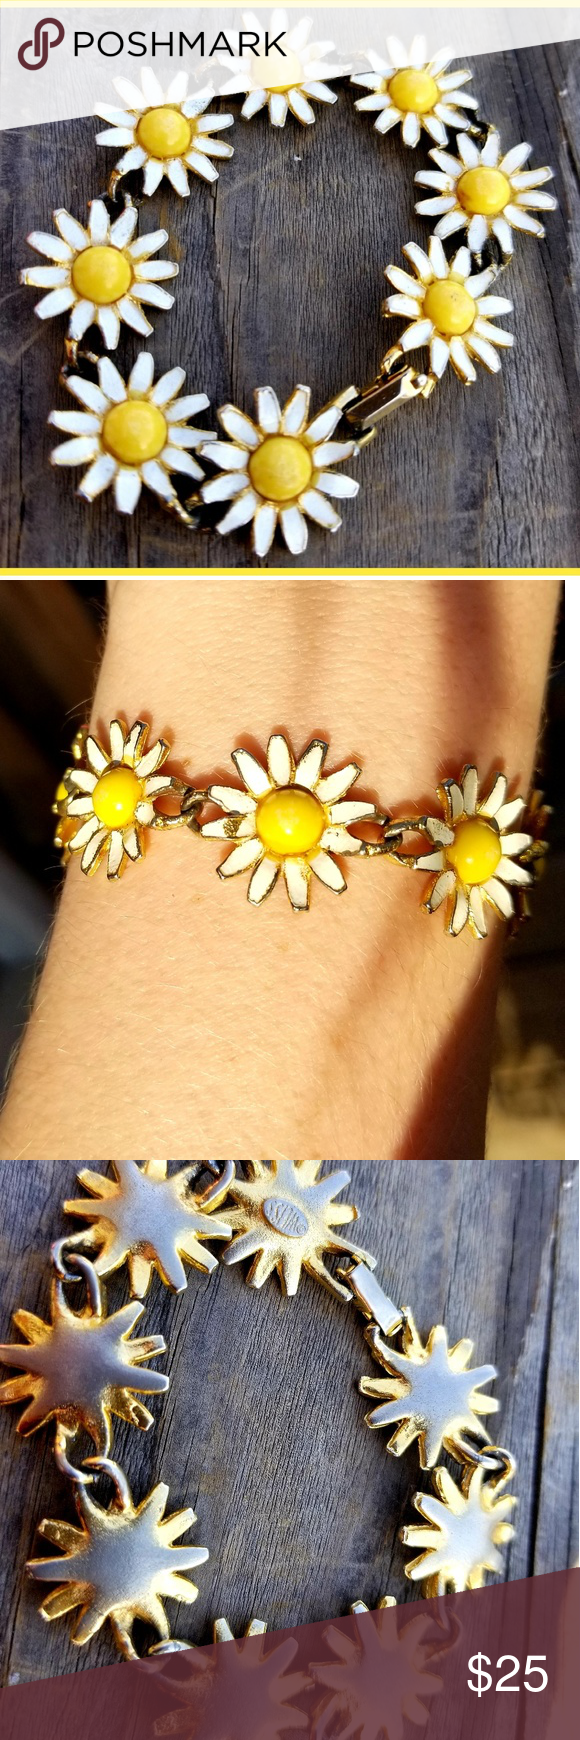 Vintage Daisy Chain Enamel 60's Weiss Bracelet Super cute signed Weiss Daisy  chain bracelet. The daisies are about the size of actual tiny wild daisies.